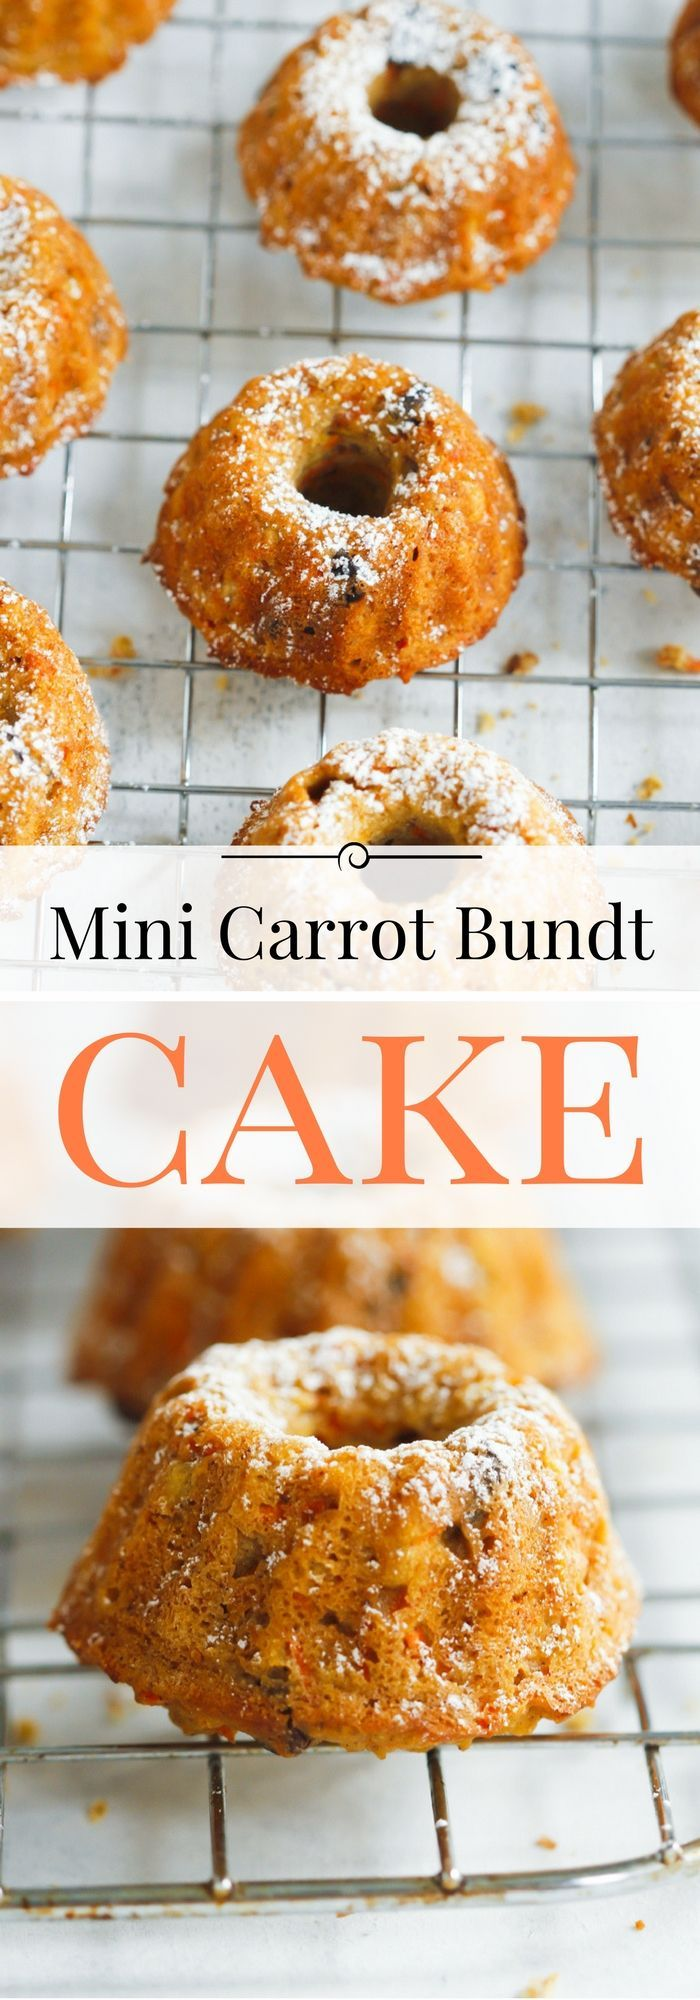 Mini Carrot Bundt Cake - This is the best healthier mini carrot bundt cake recipe ever. It's very easy to make, perfectly spiced with cinnamon and nutmeg and delicious! | www.primaverakitchen.com